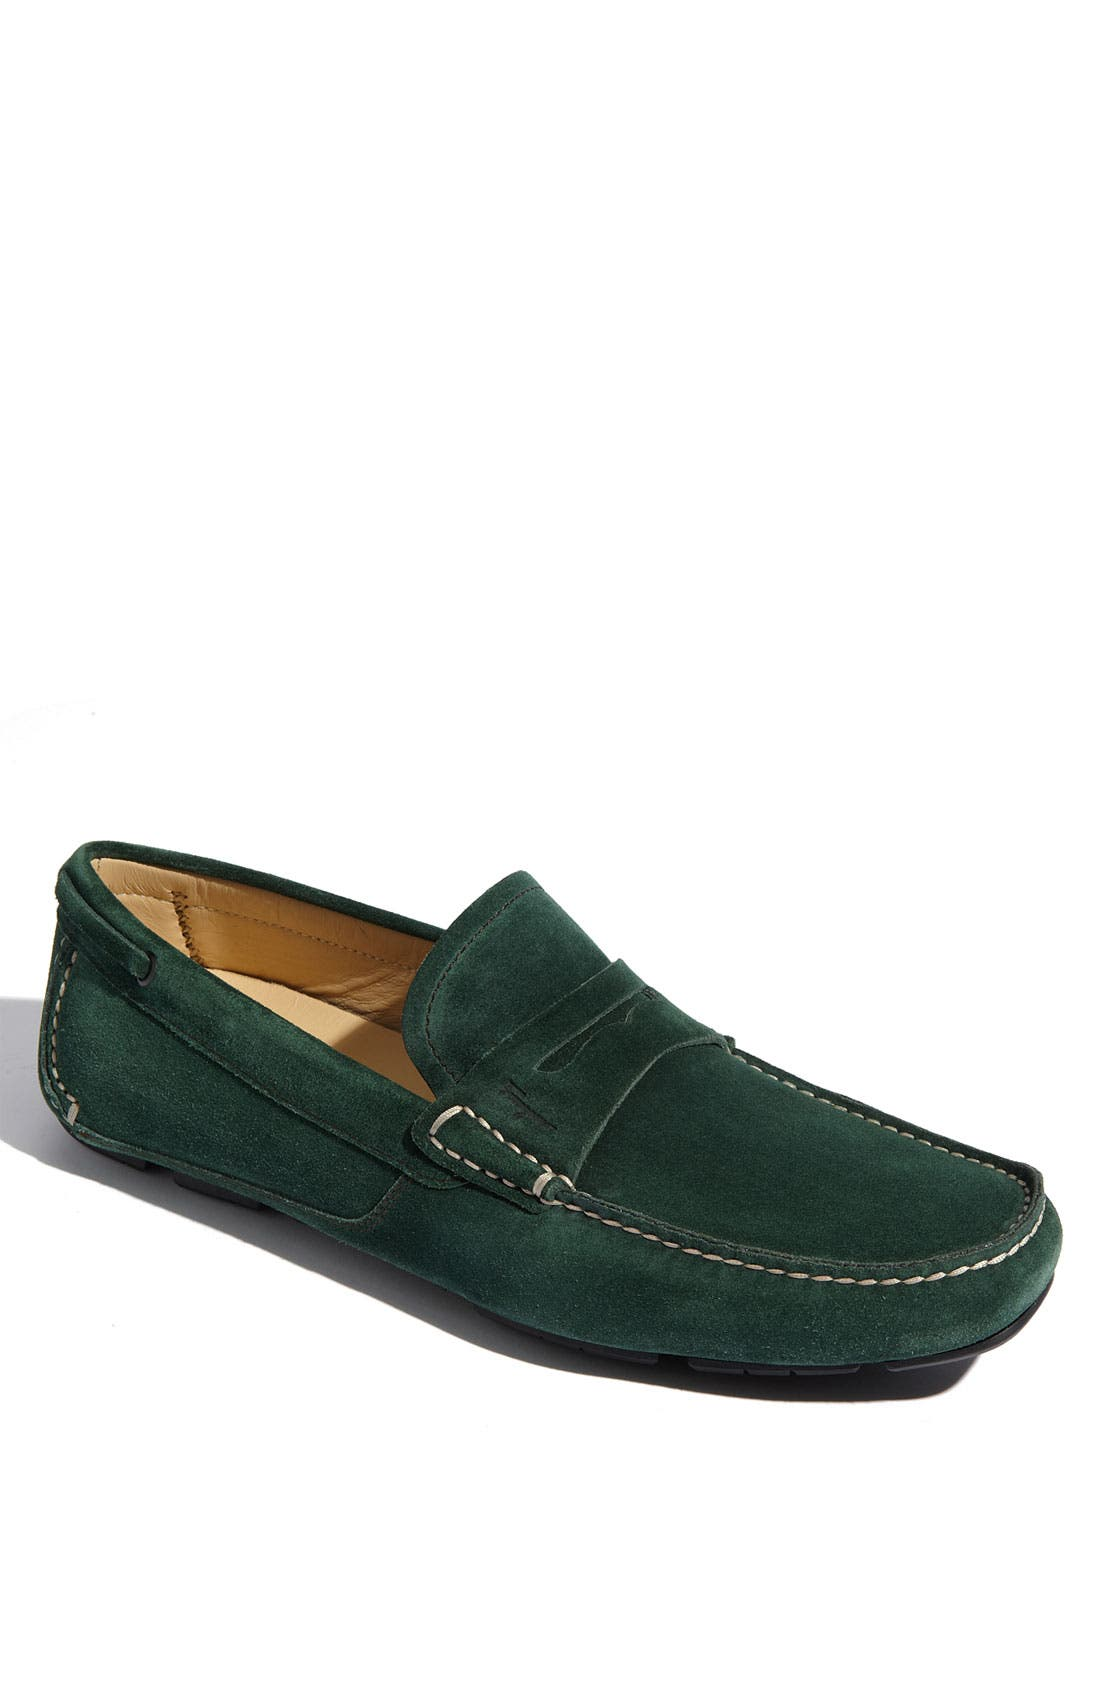 Main Image - Salvatore Ferragamo 'Billy 2' Driving Moccasin